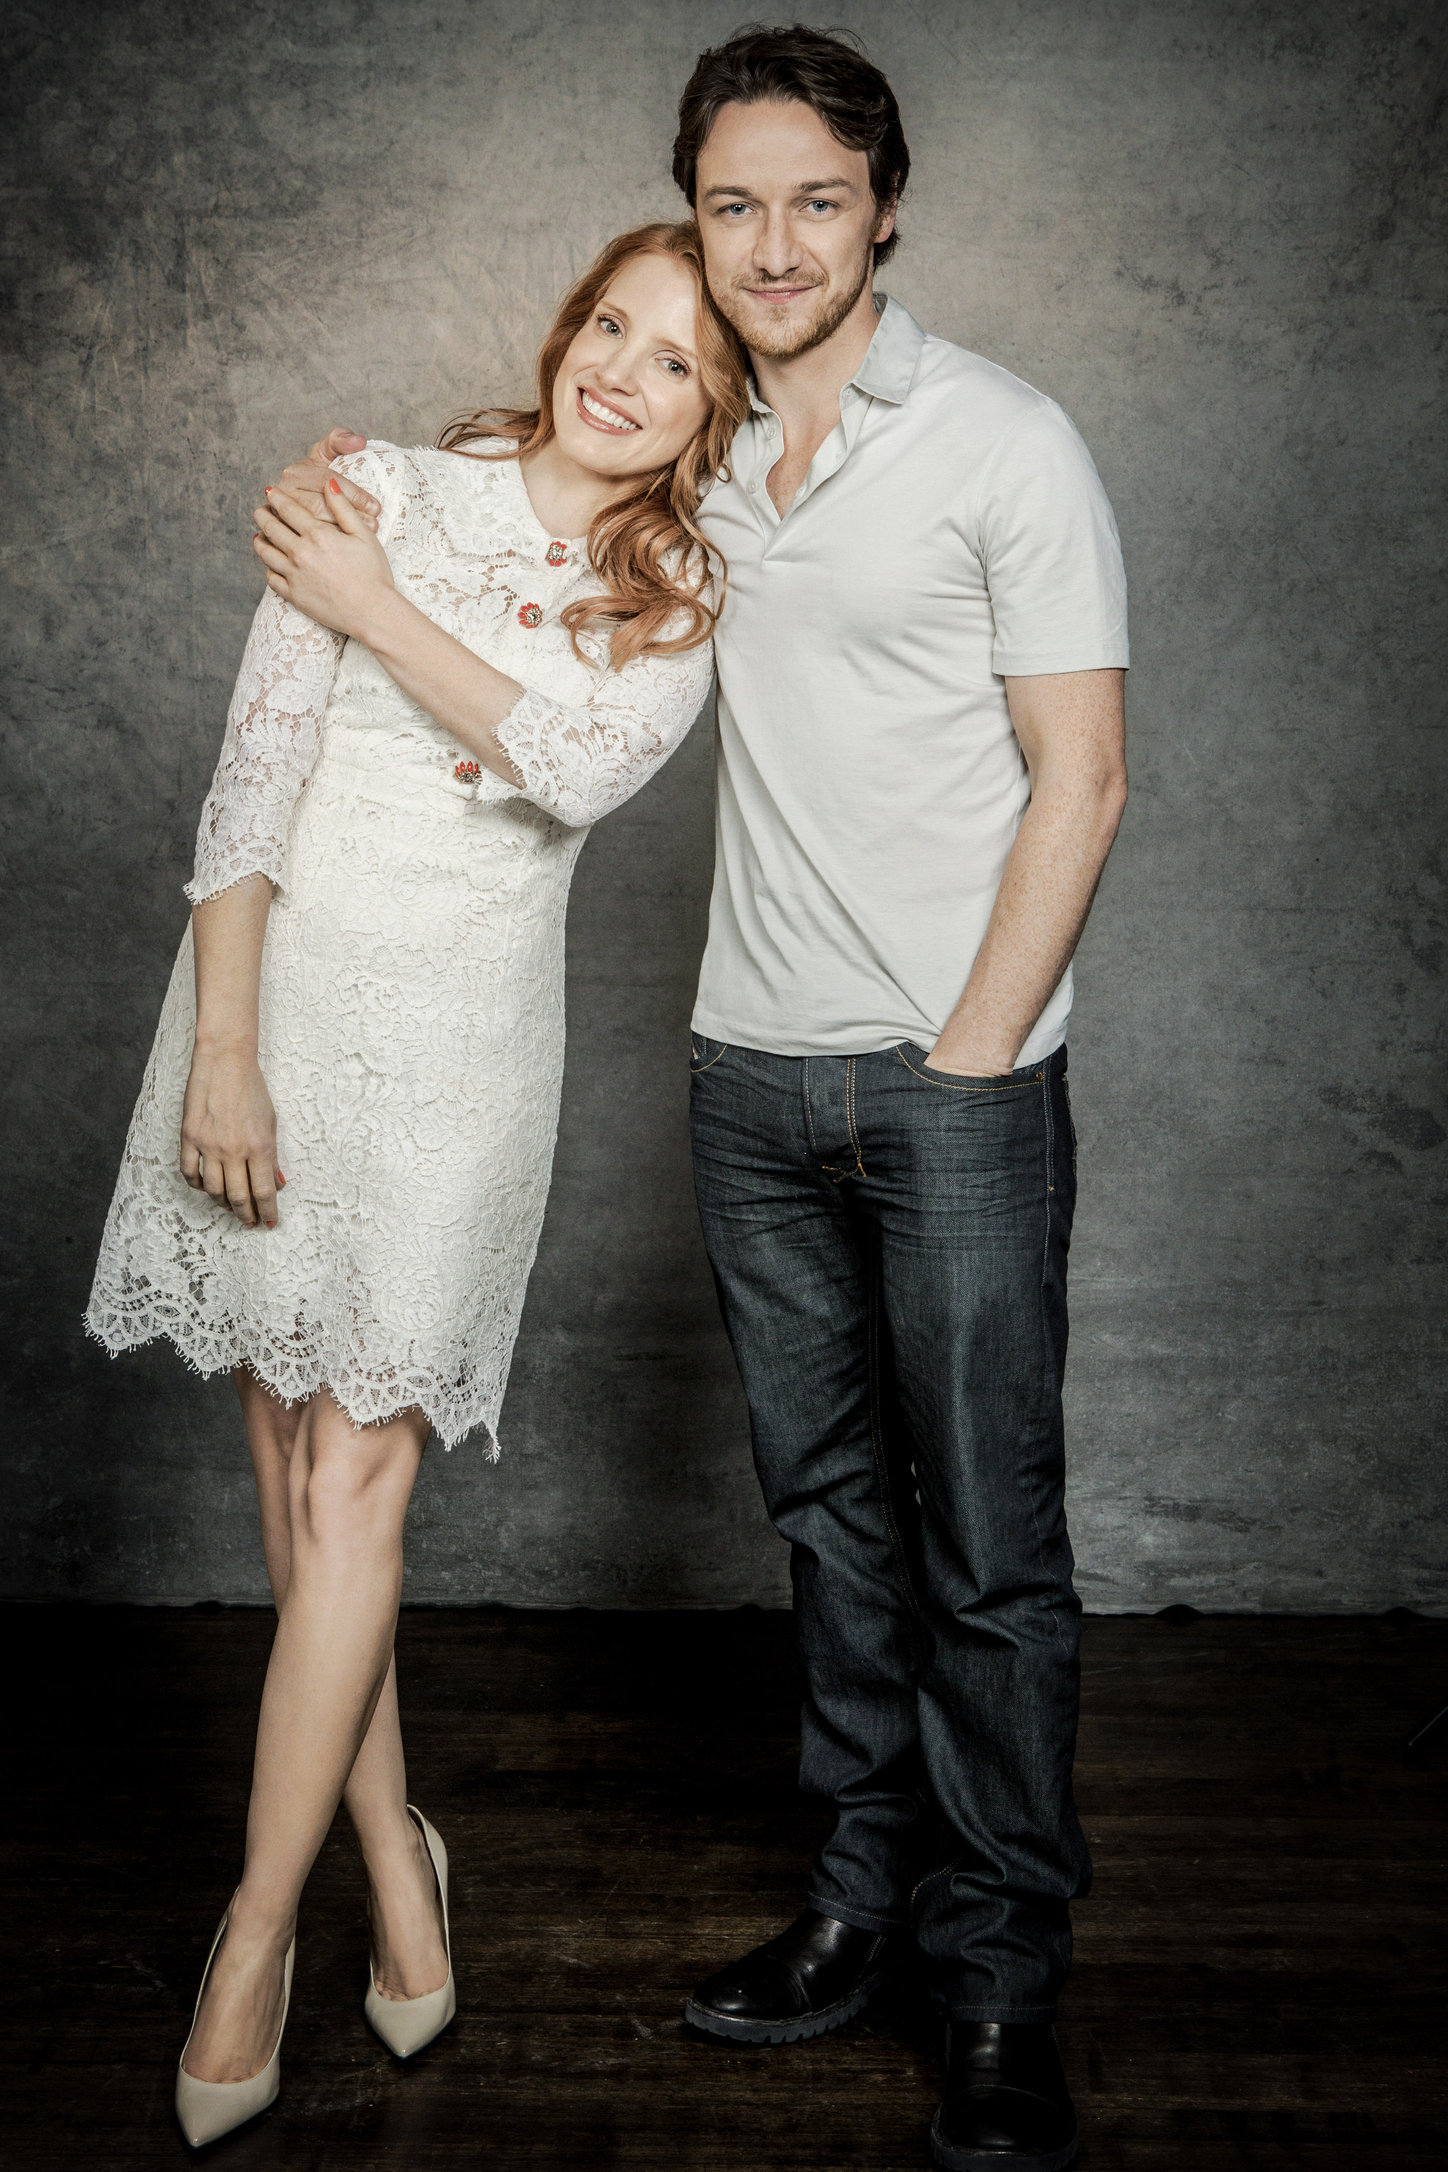 jessica chastain, james mcavoy, actors